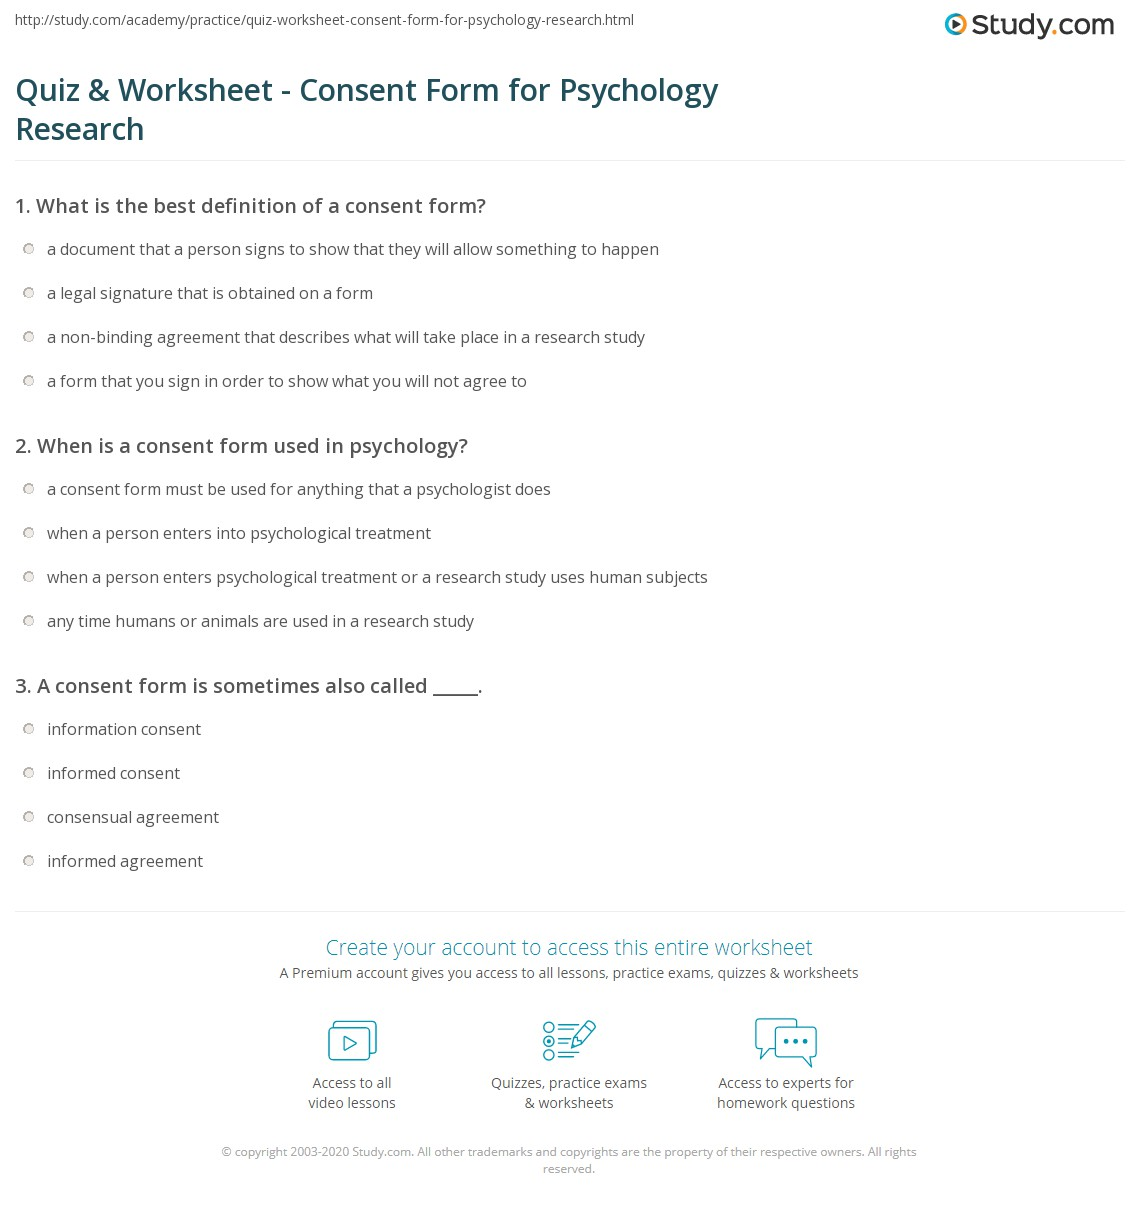 quiz worksheet consent form for psychology research study com